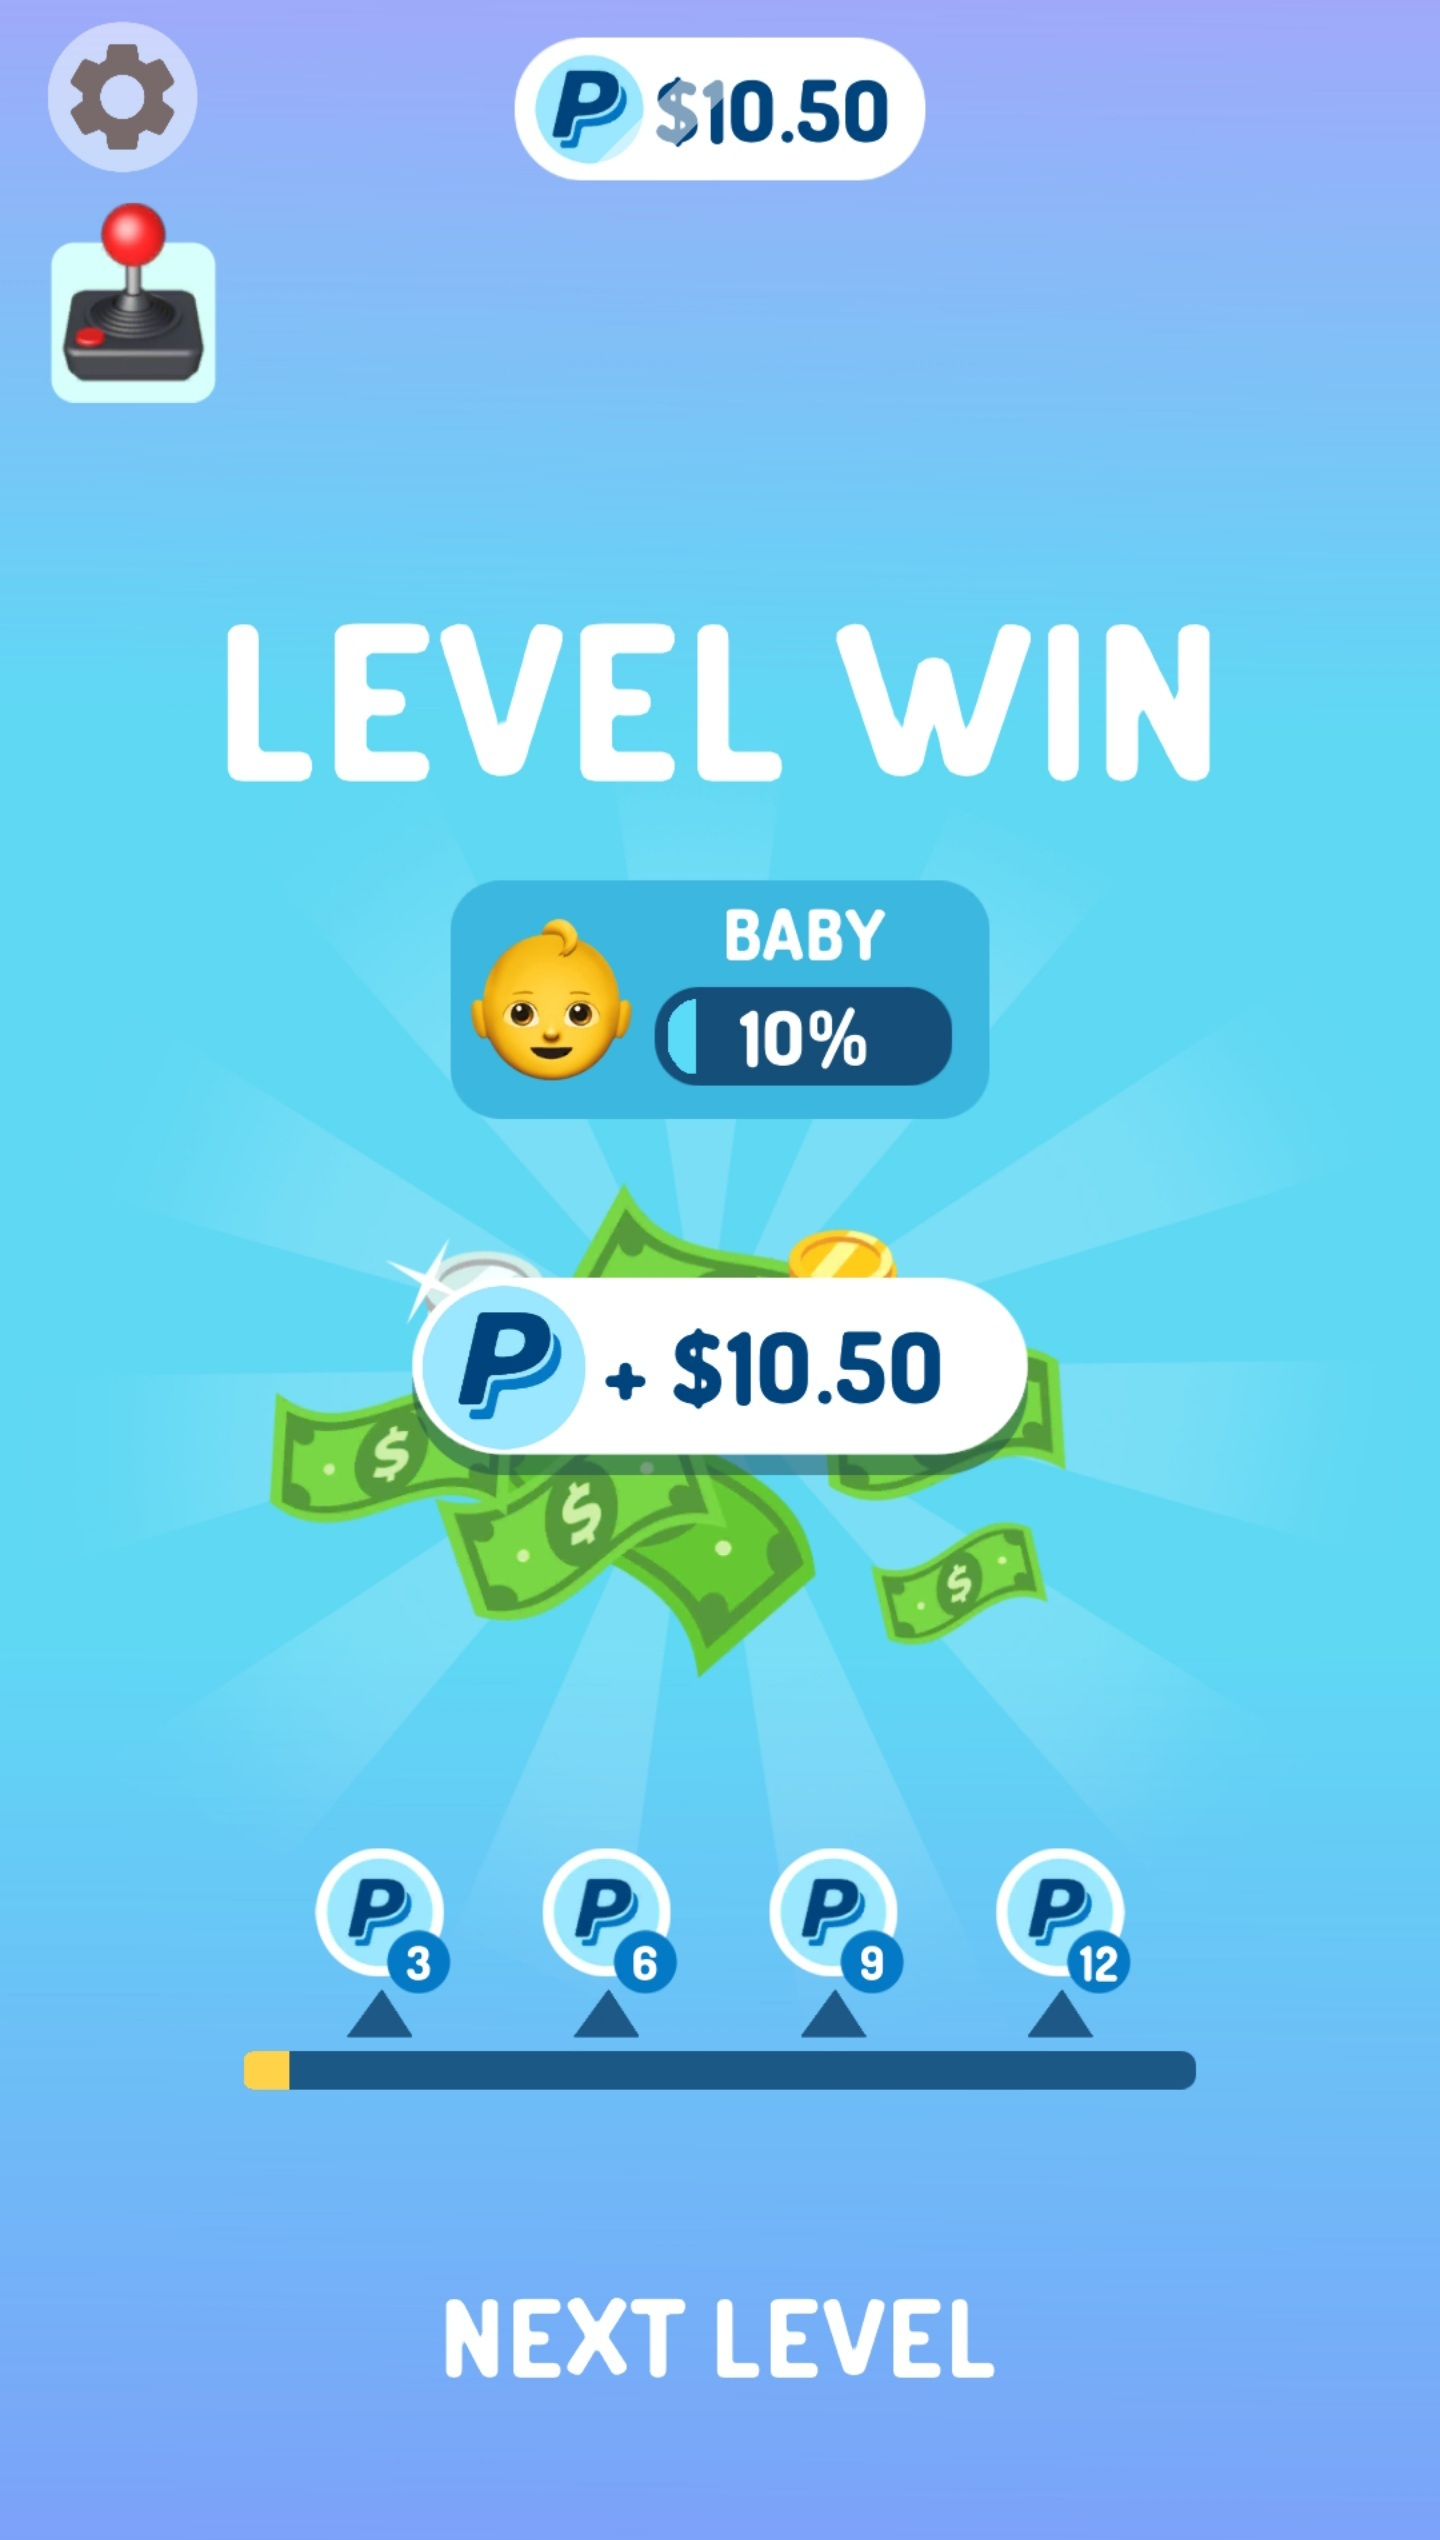 First Level Win Of $10.50